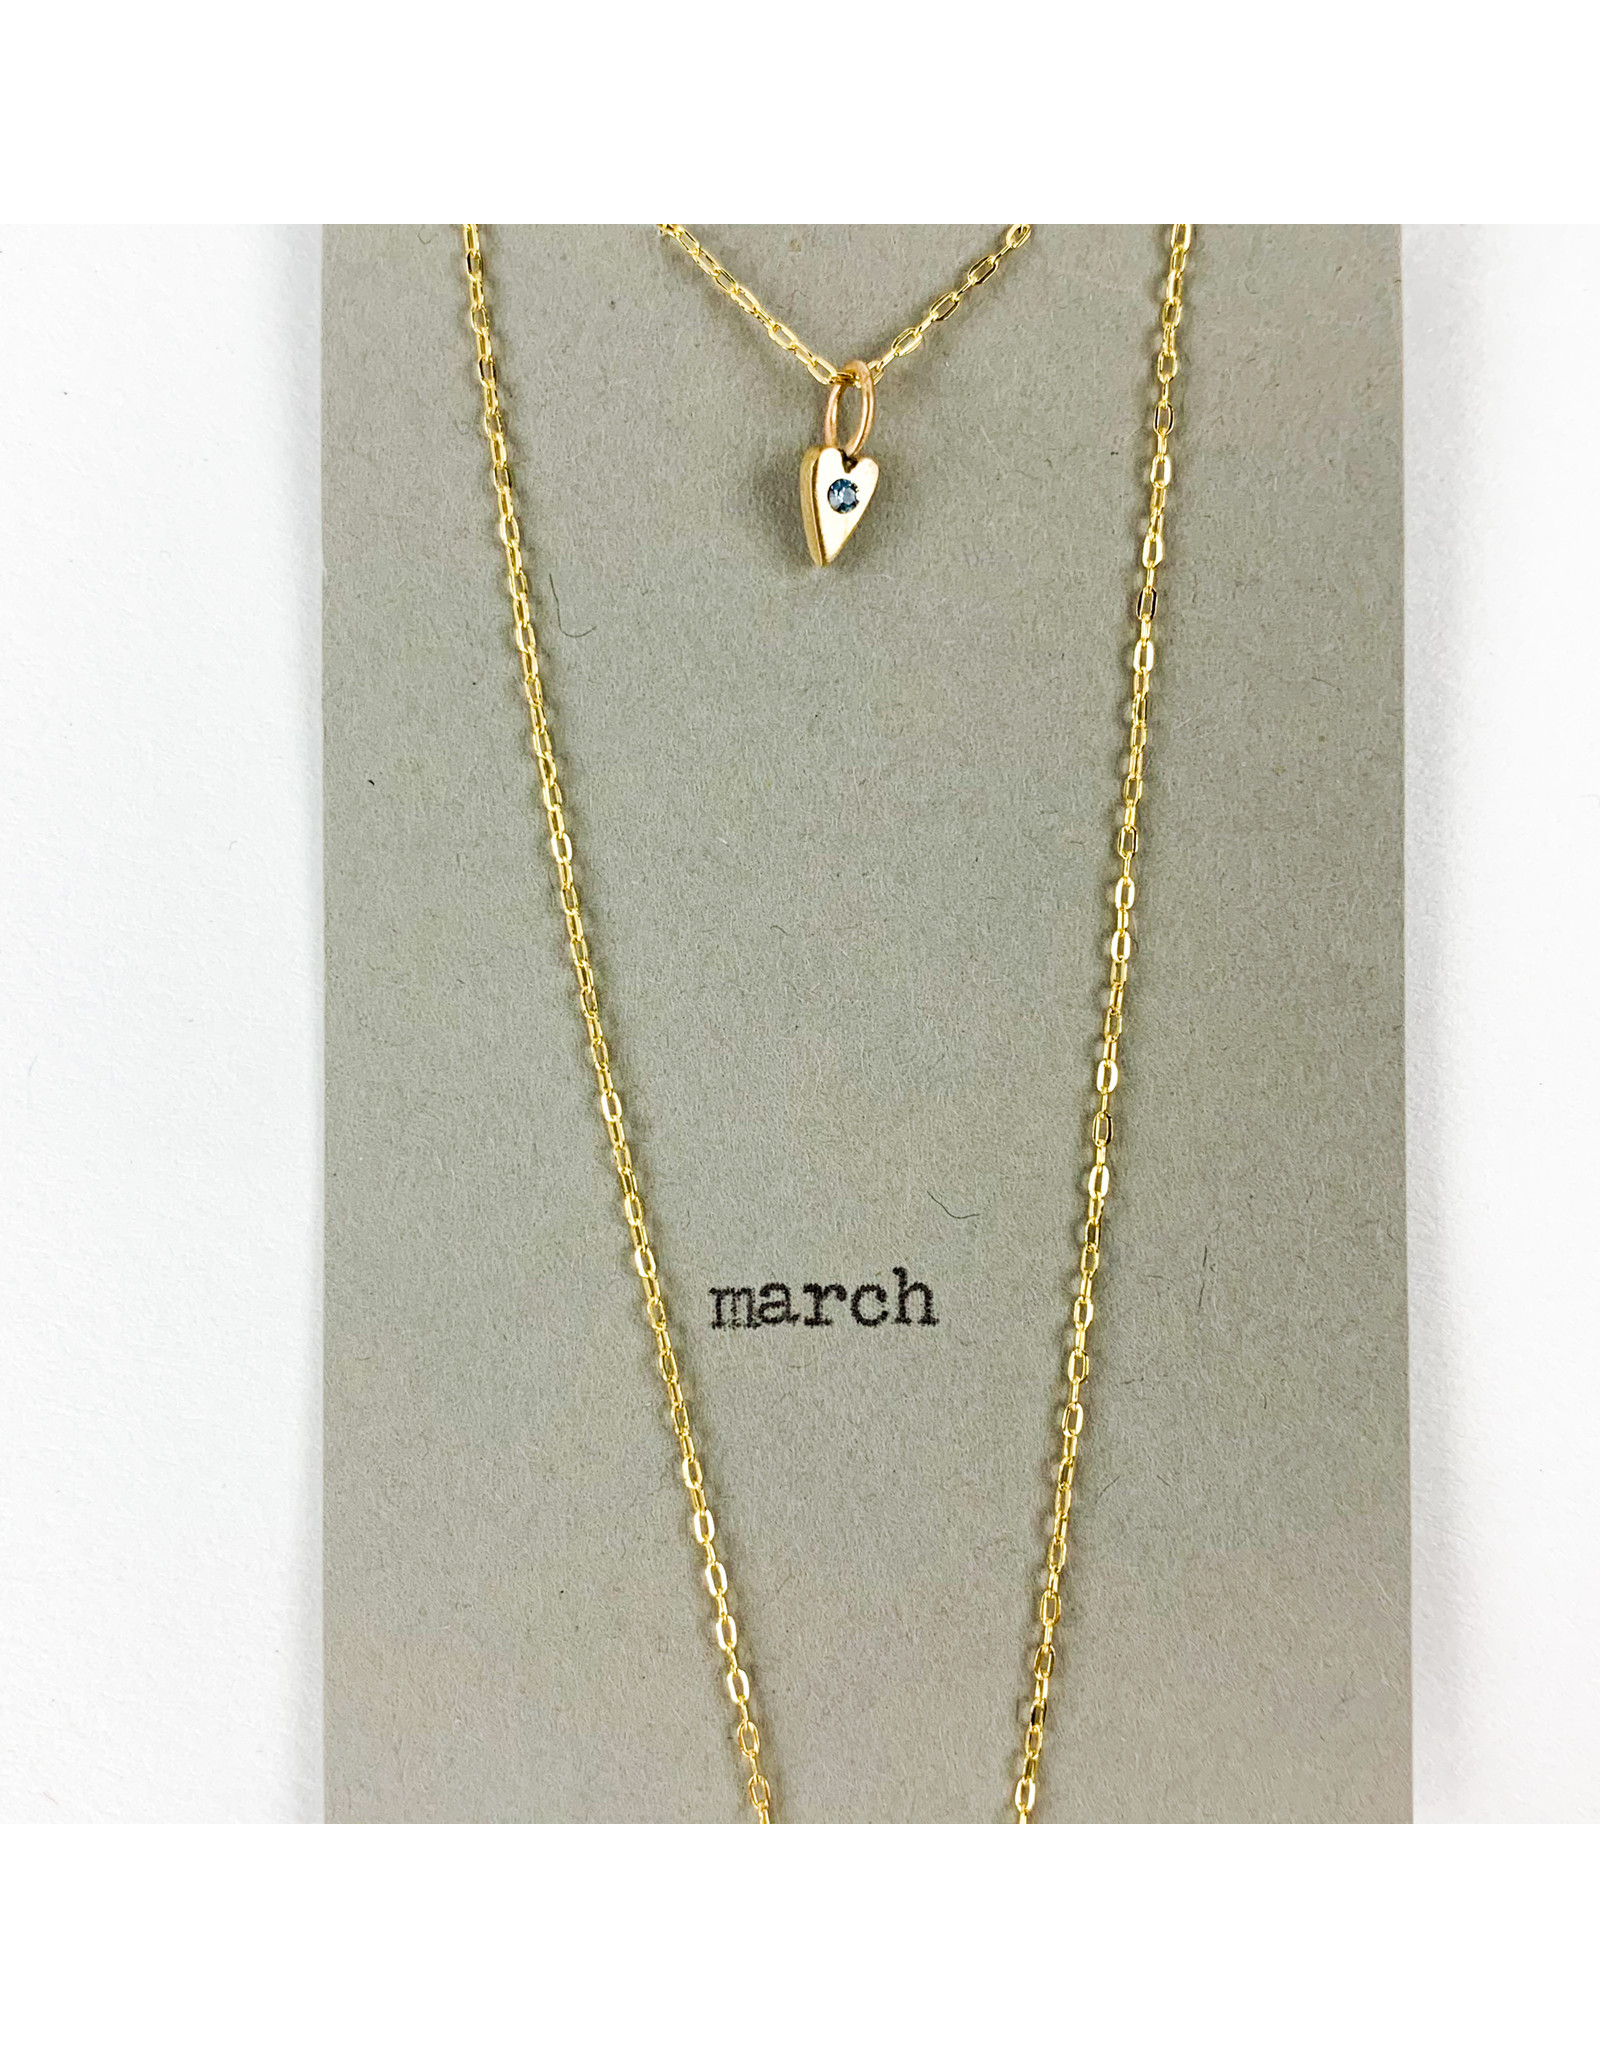 penny larsen March Necklace/ Aquamarine Gold Chain